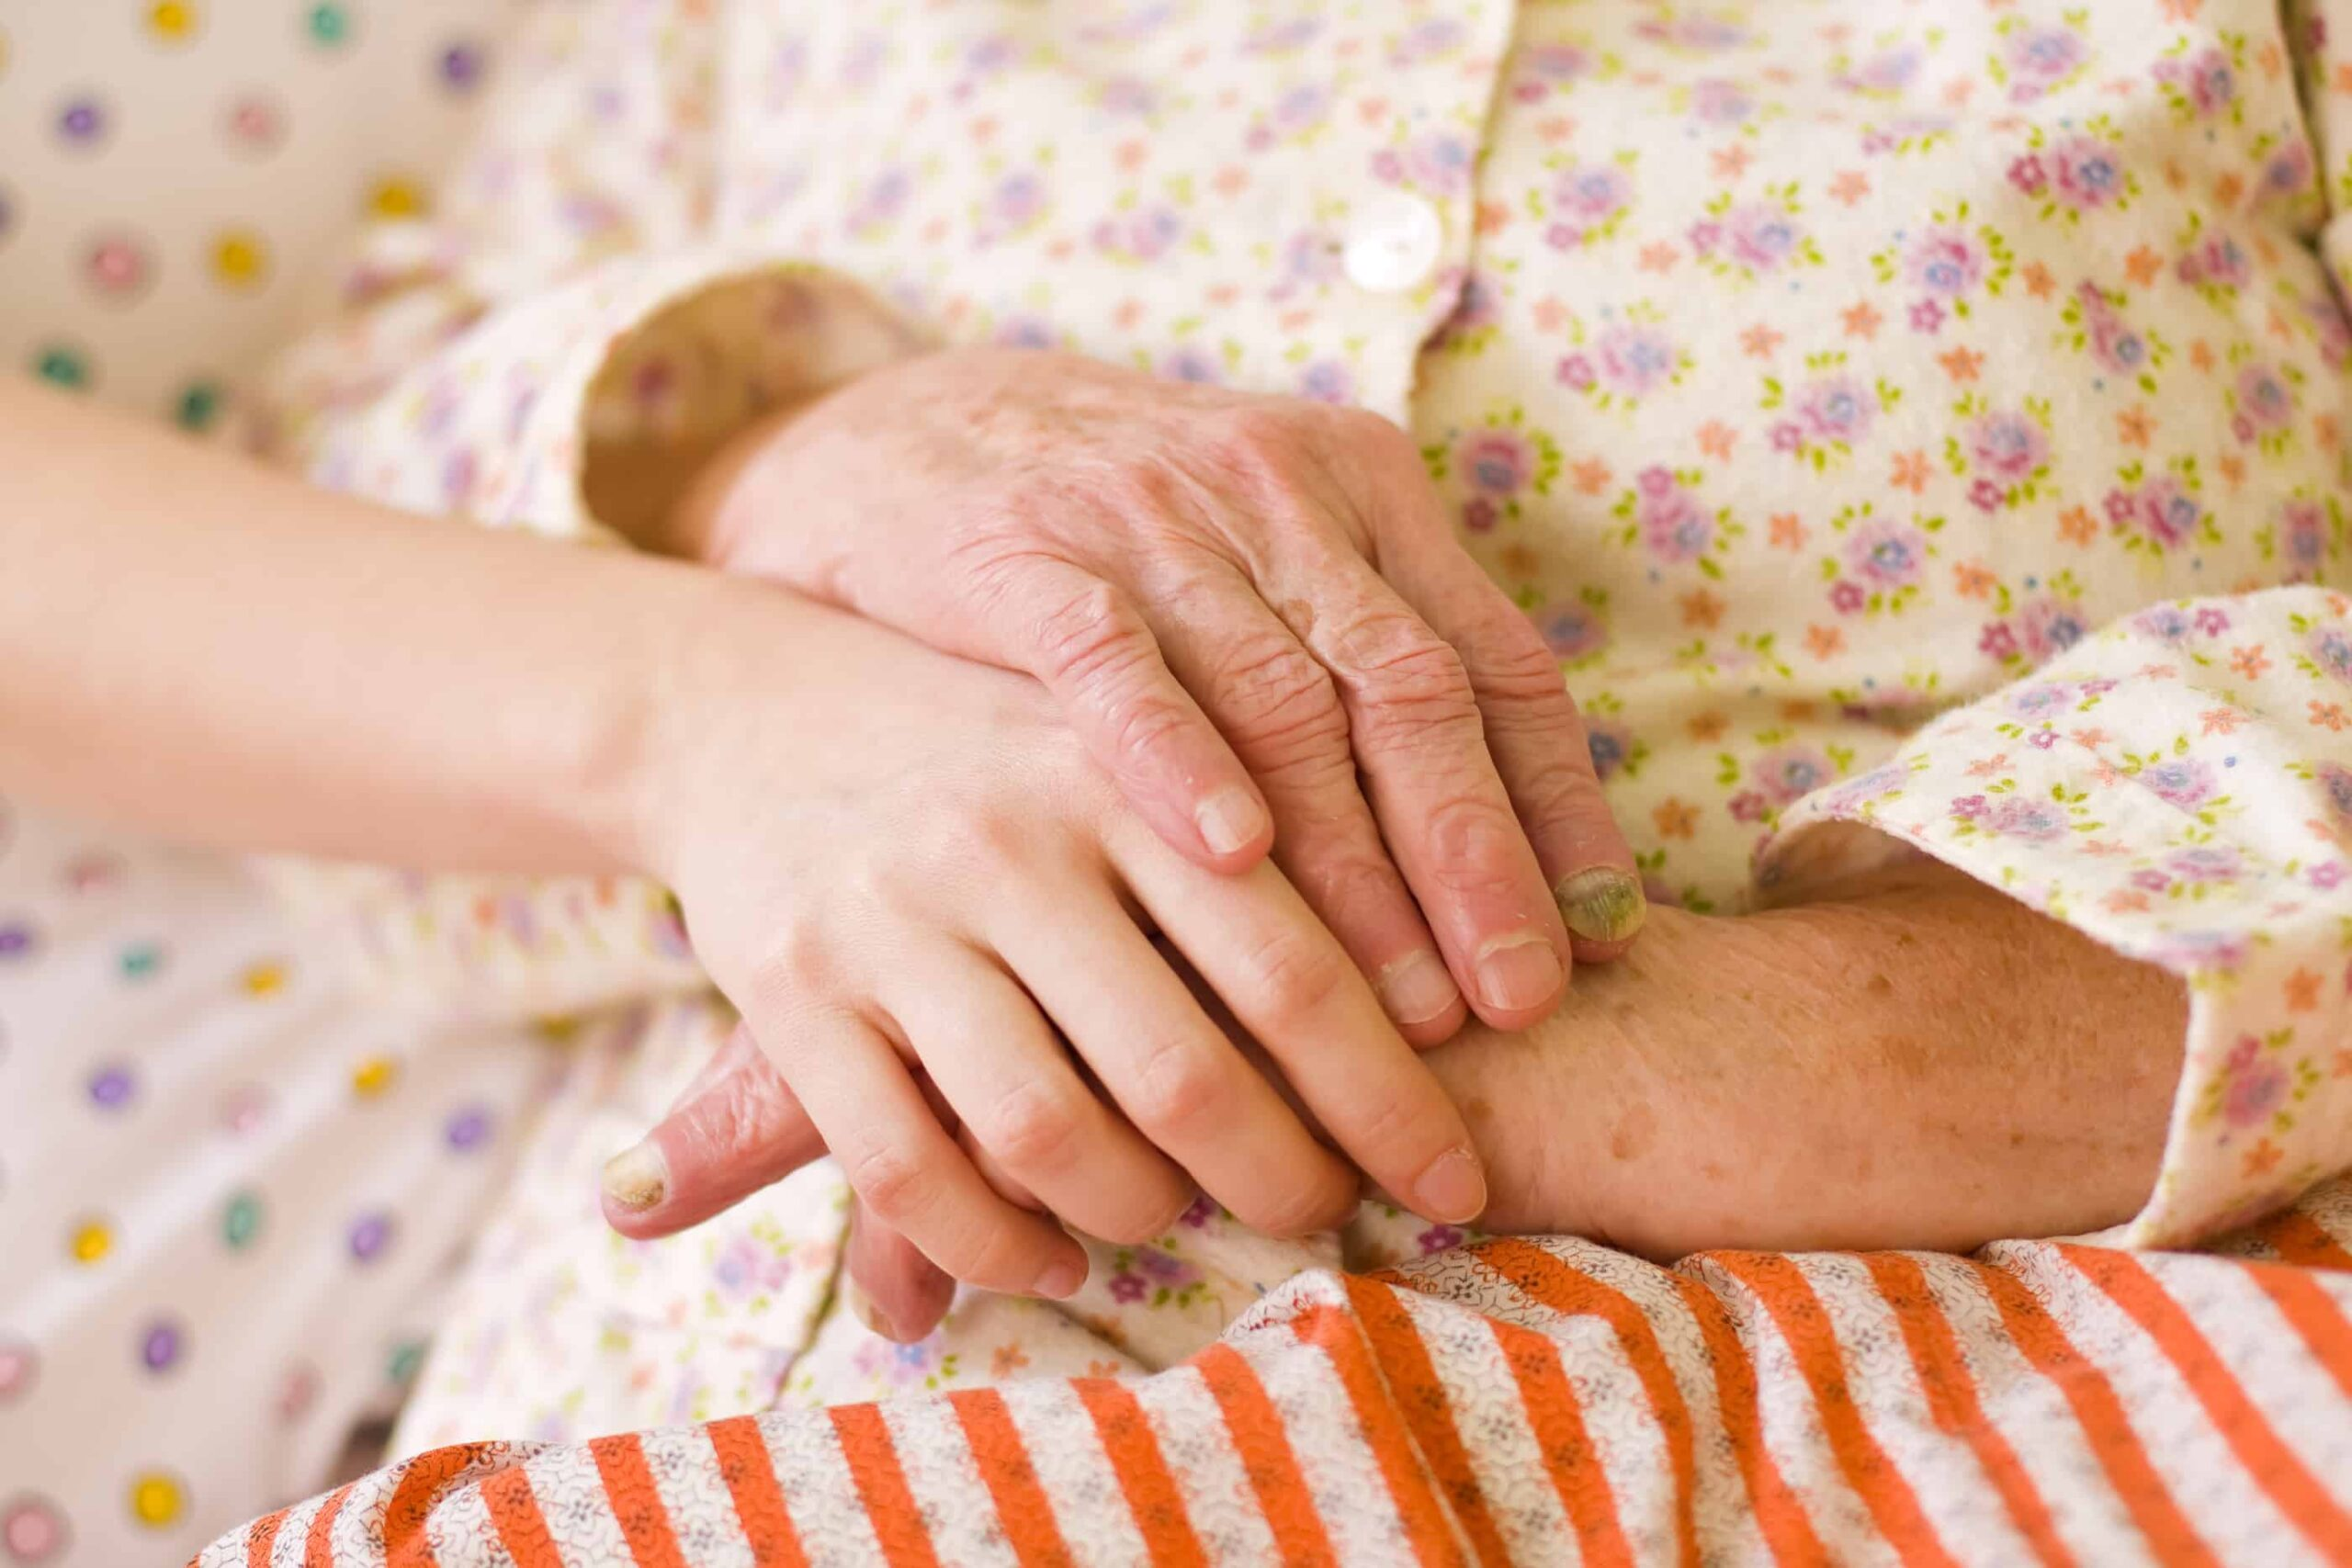 Hospice vs. Palliative Care: What are the Differences?